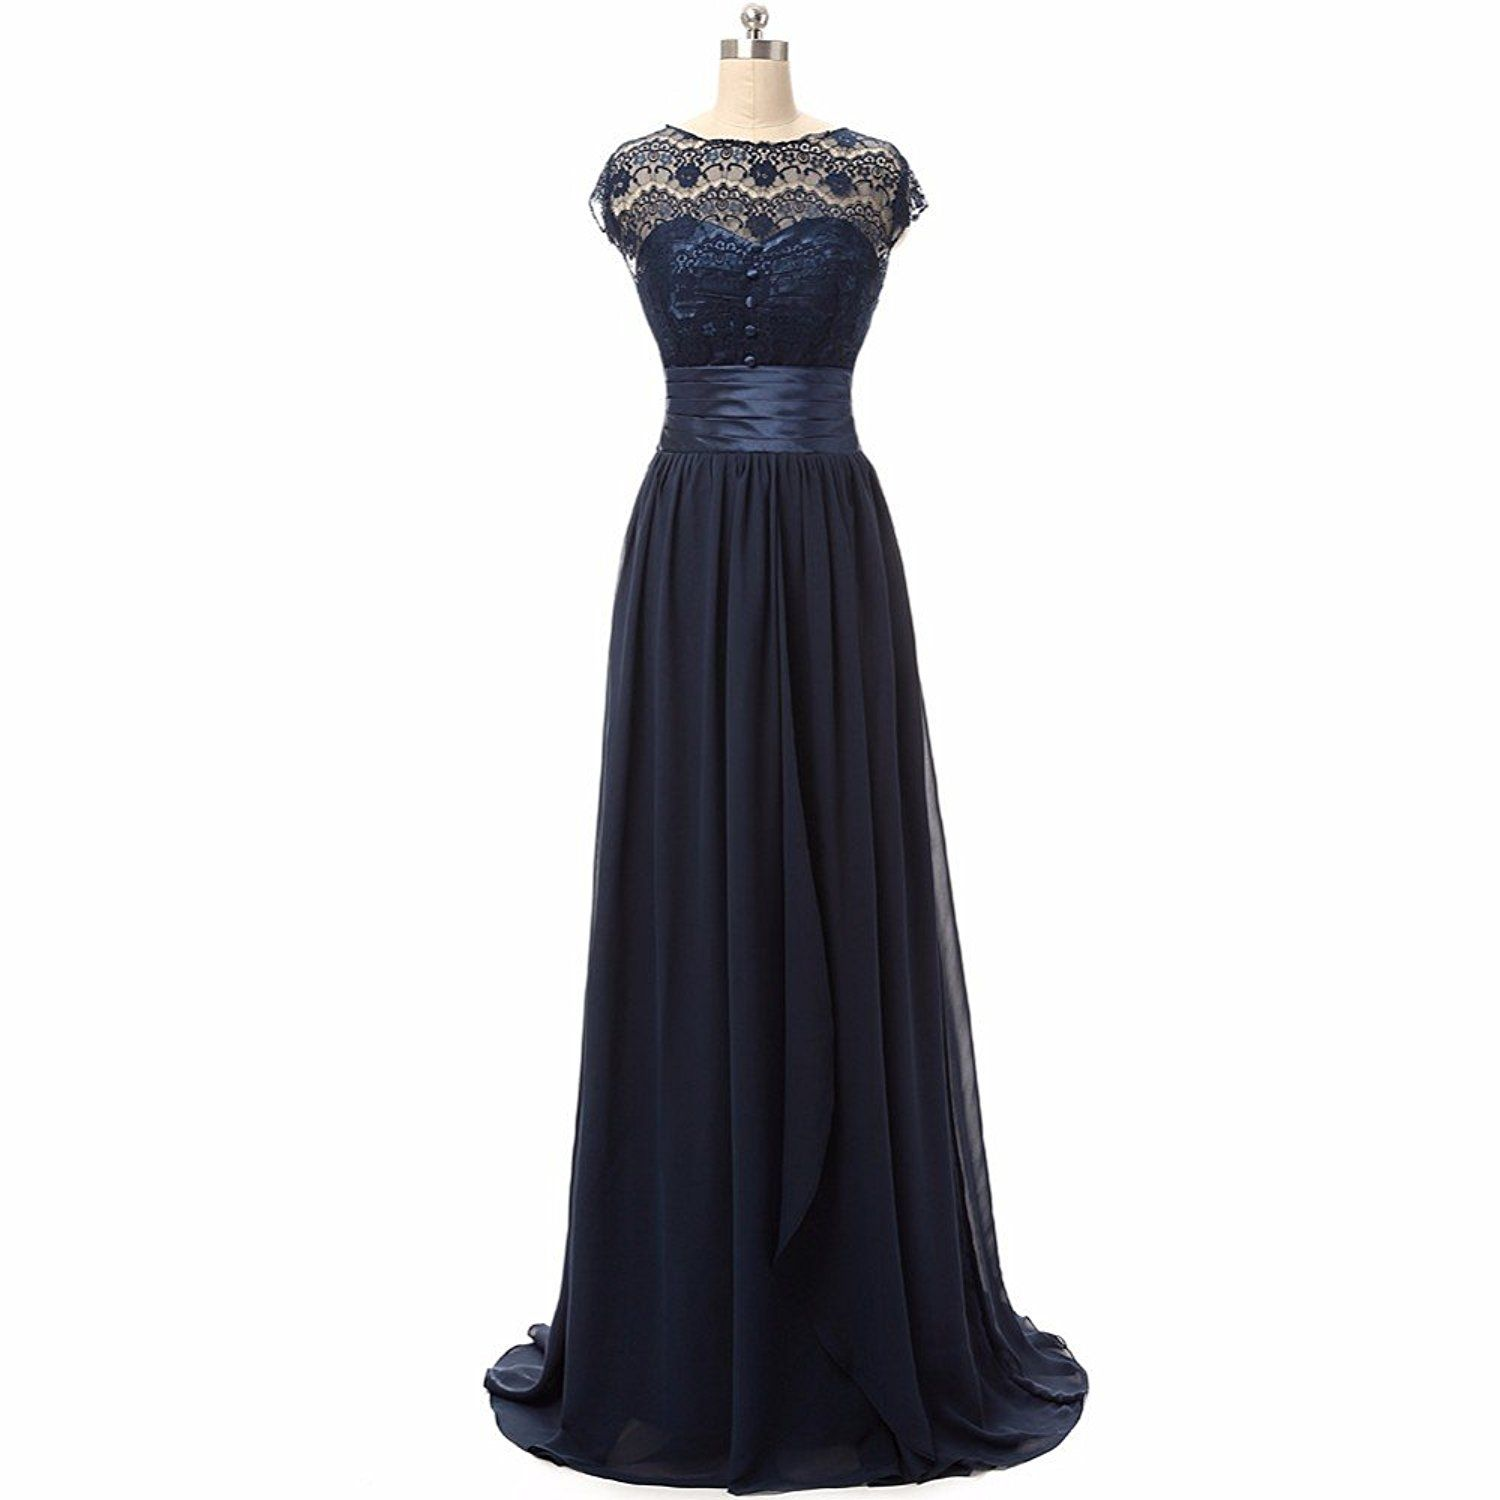 Vampal navy blue sheer lace bodice chiffon prom dress with satin